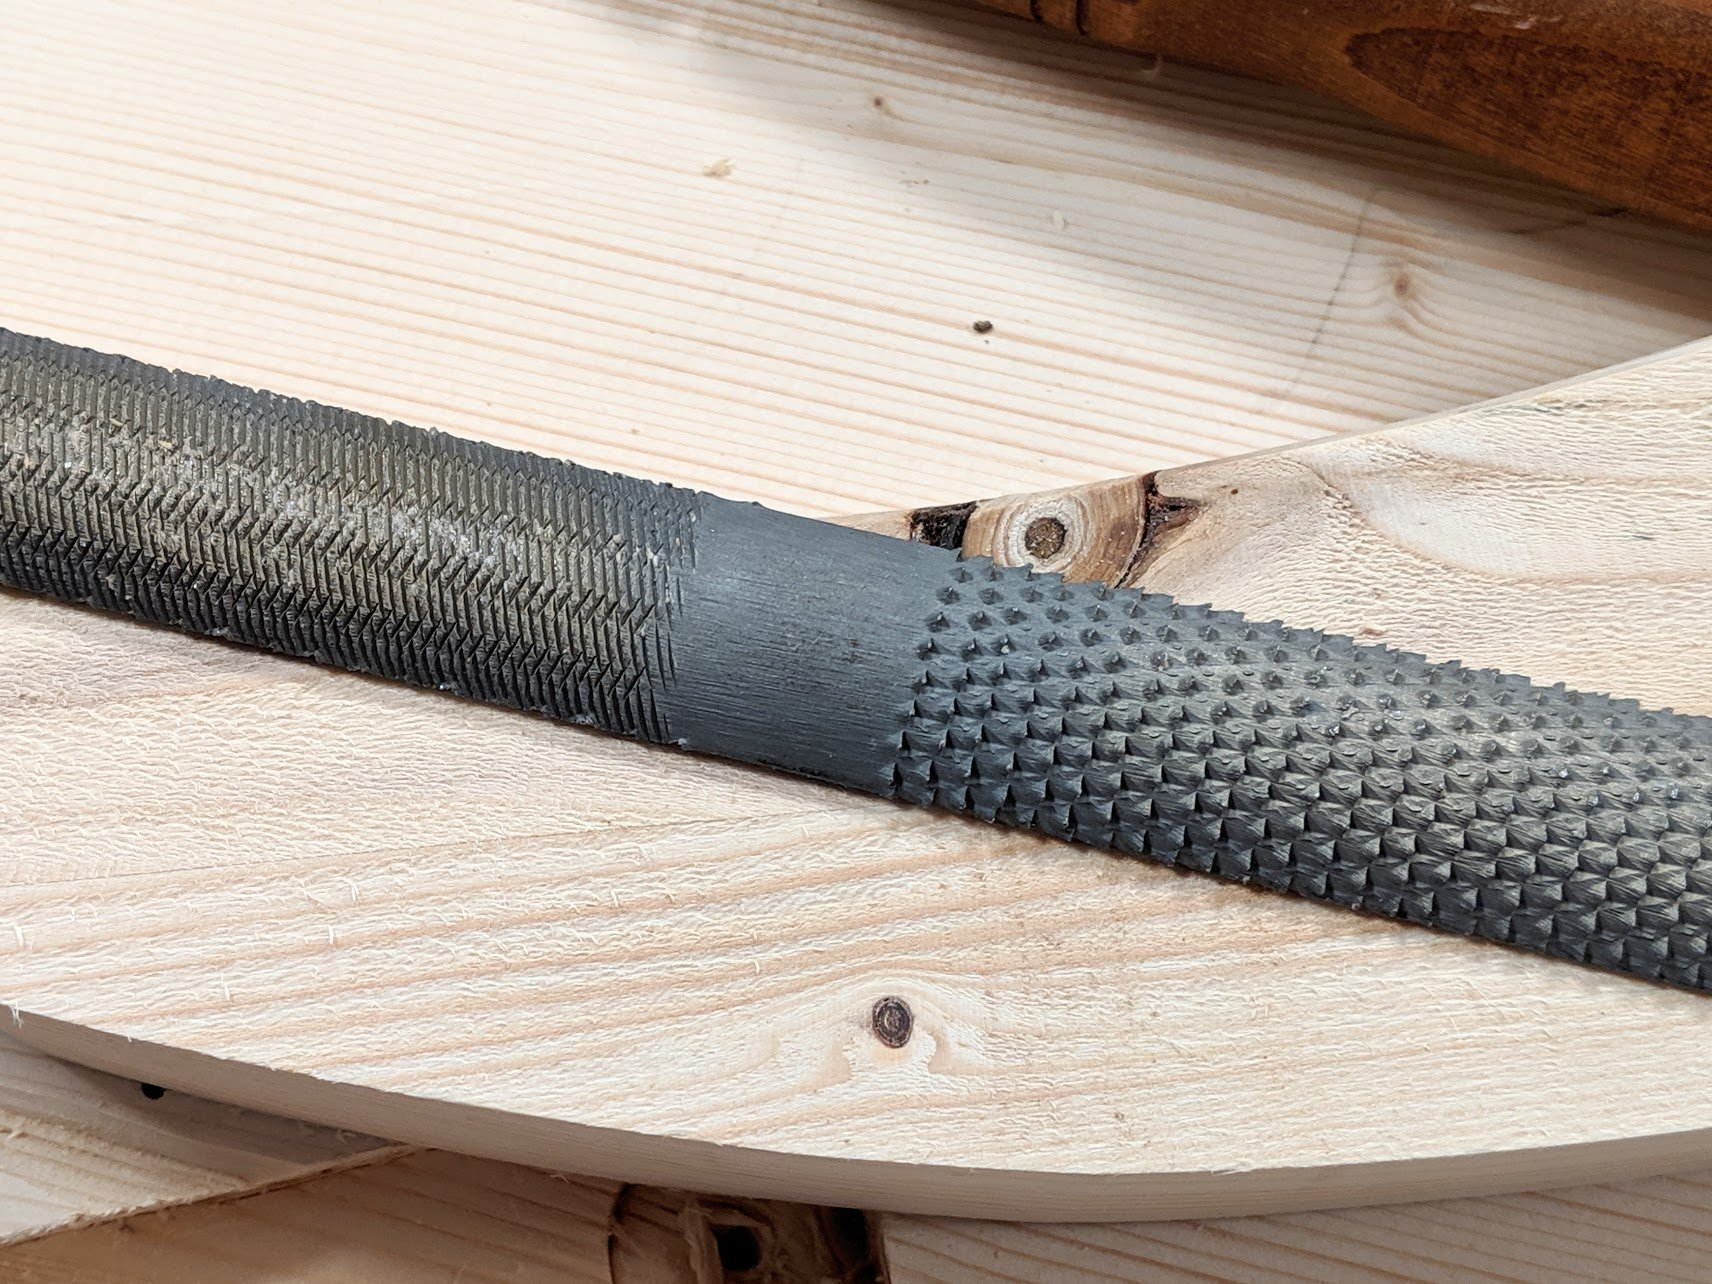 14 Inch Long. with a Half Round Shape 5 Units Rasp Bastard Coarseness of Cut with a Tang Nicholson